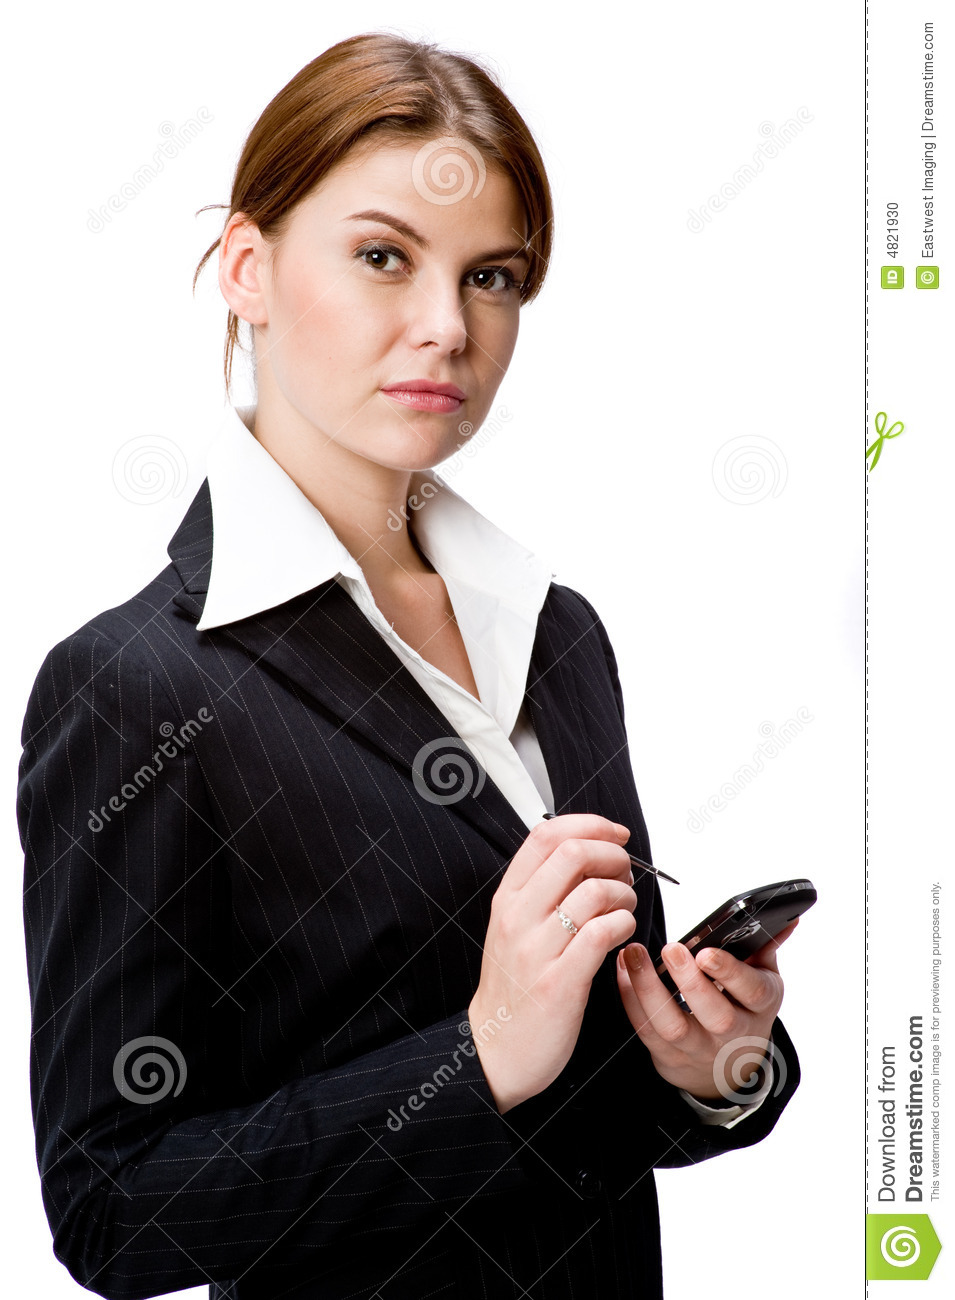 serious-businesswoman-4821930.jpg